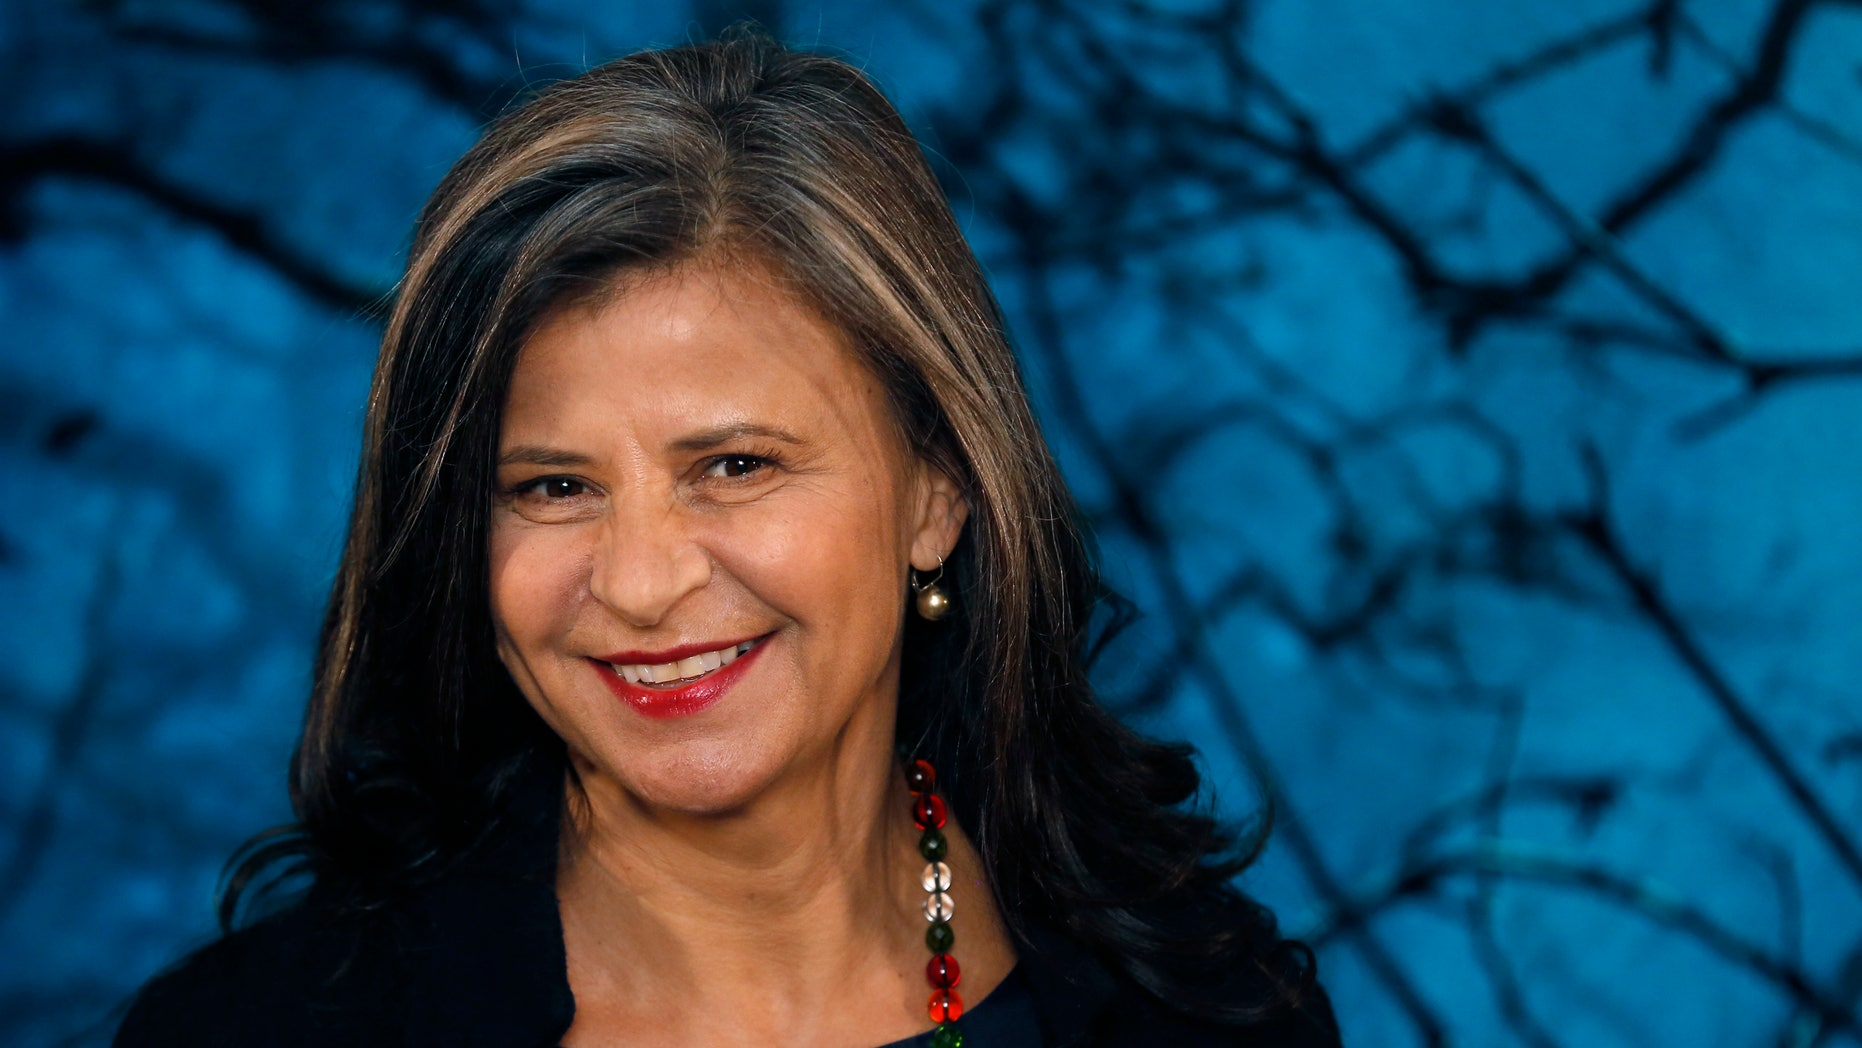 """January 7, 2015. Actress Tracey Ullman poses during a media event for the film """"Into the Woods"""" in London."""